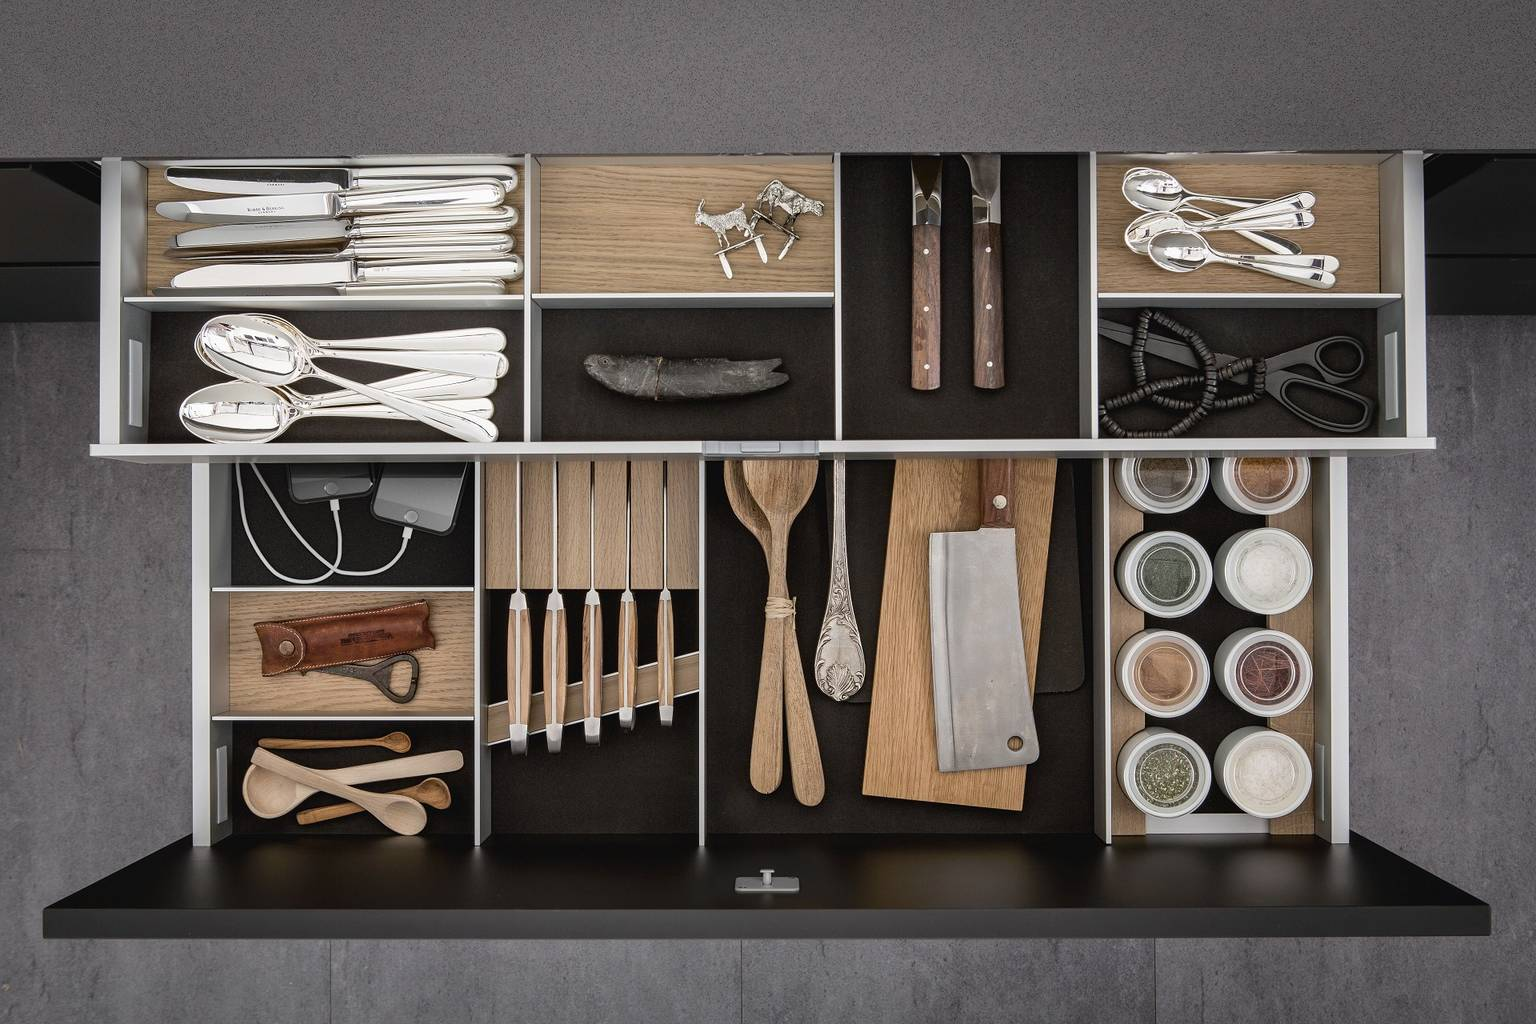 Cutlery inserts, porcelain jars, knife block and USB charging station for iPhone in SieMatic kitchen drawer